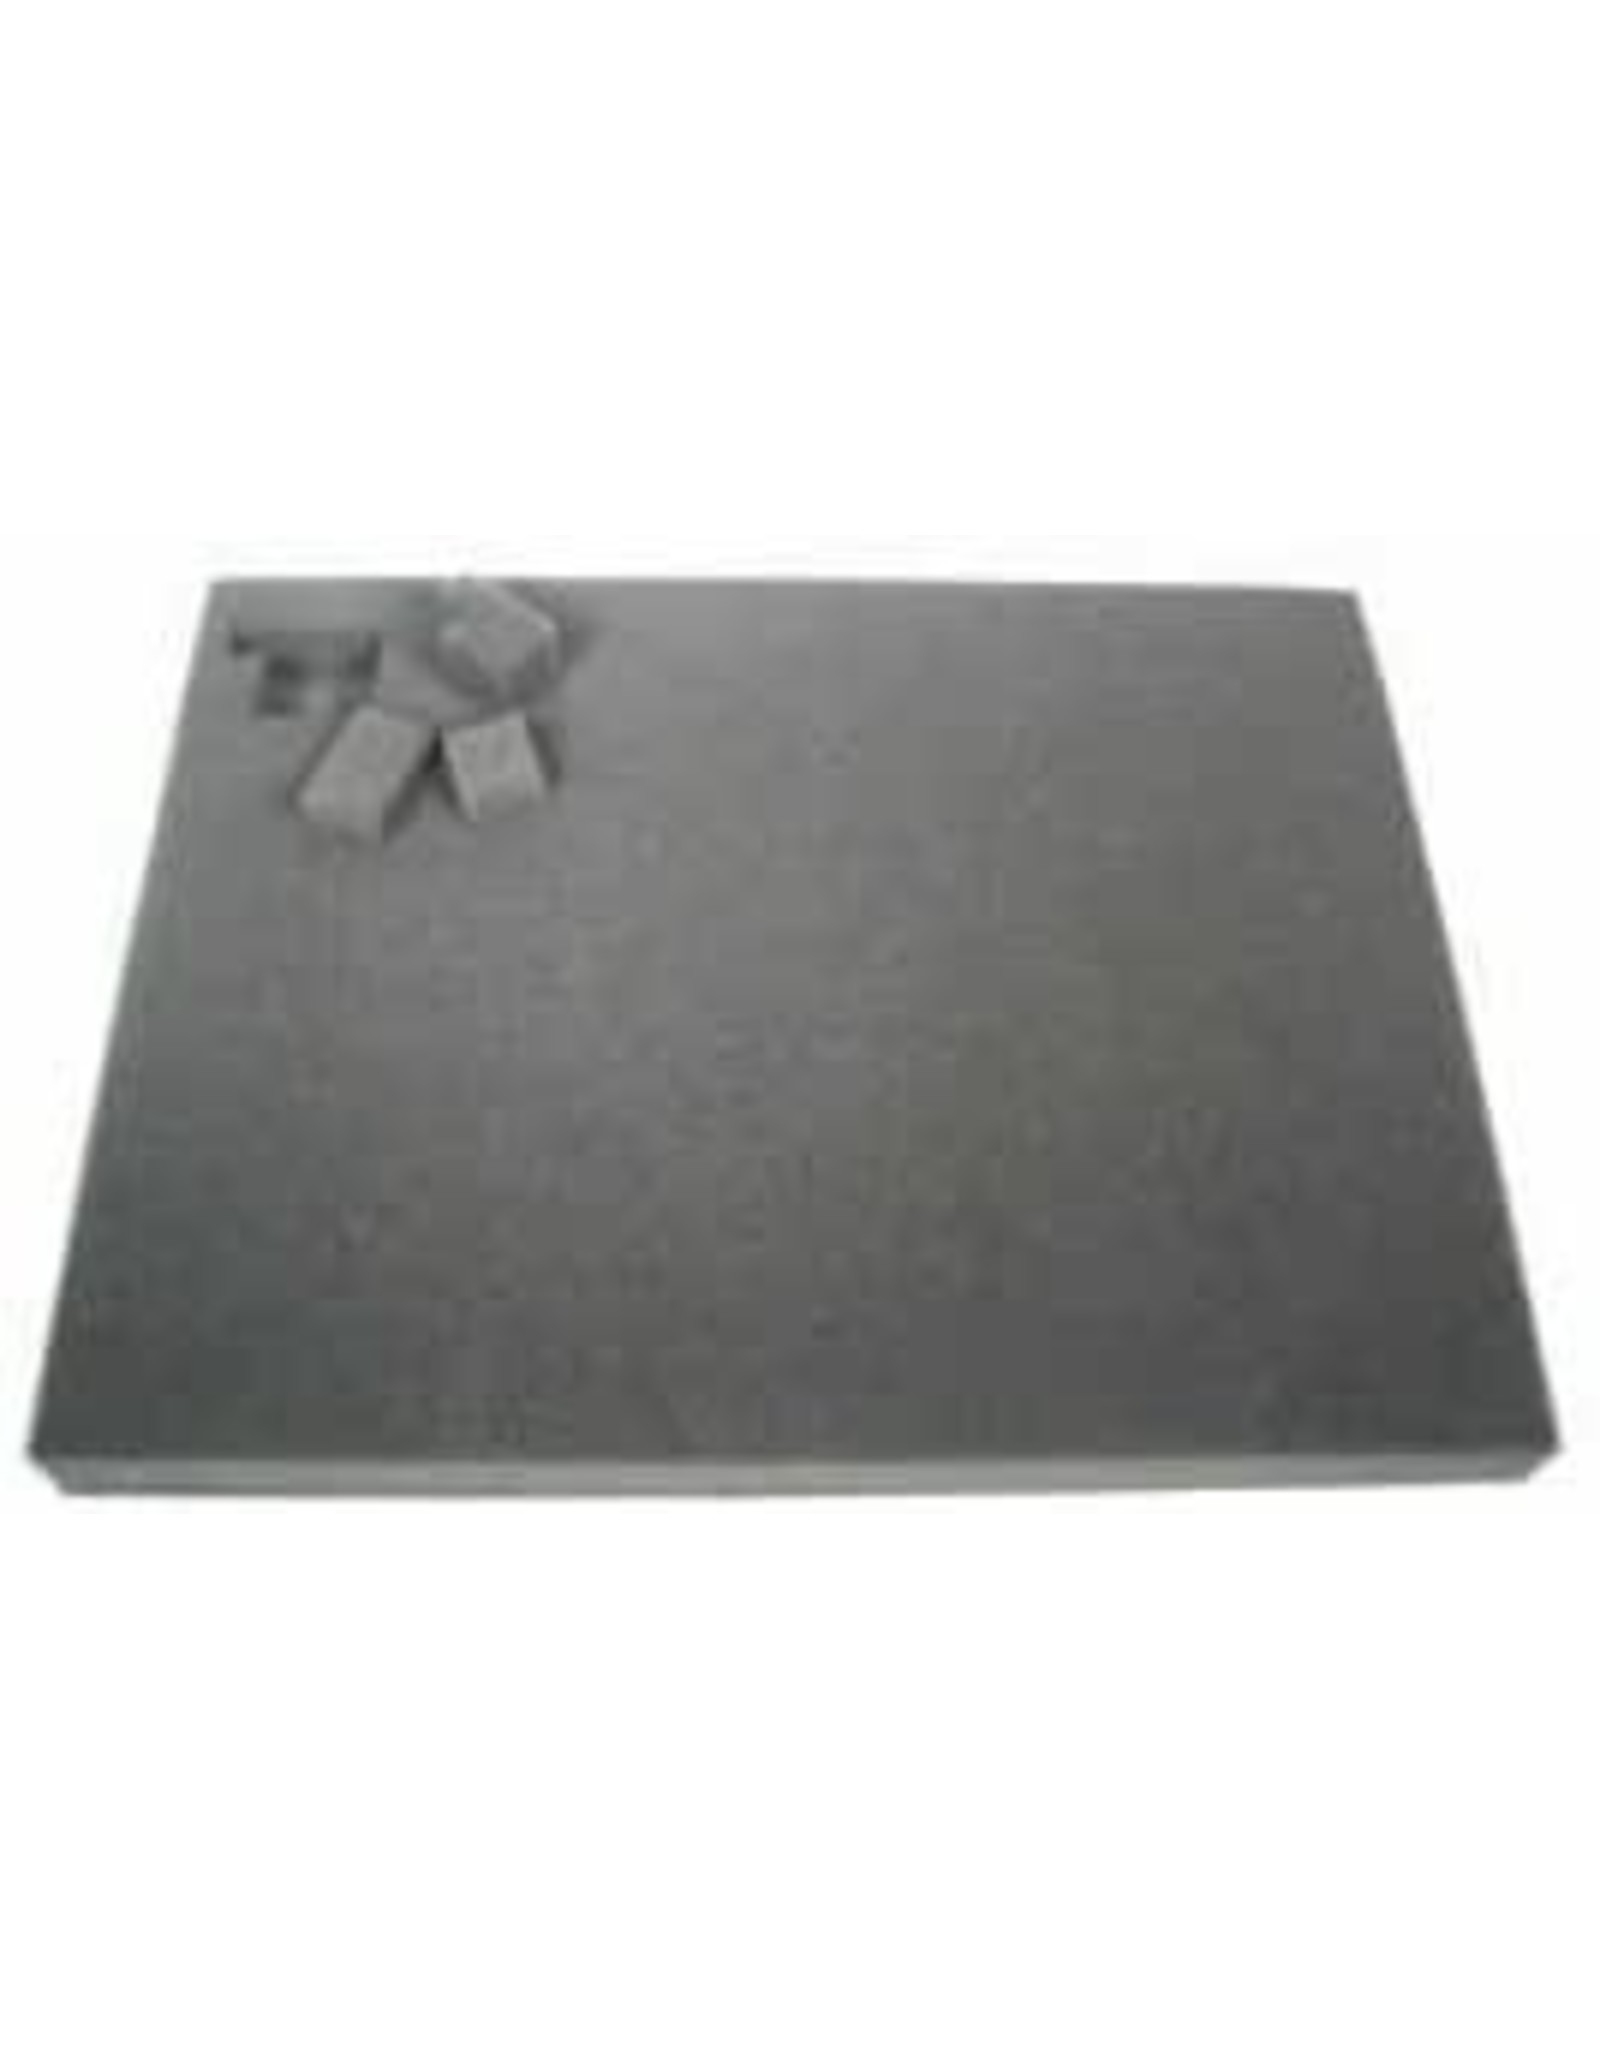 Battle Foam Battle Foam Large Pluck Foam Tray 2in